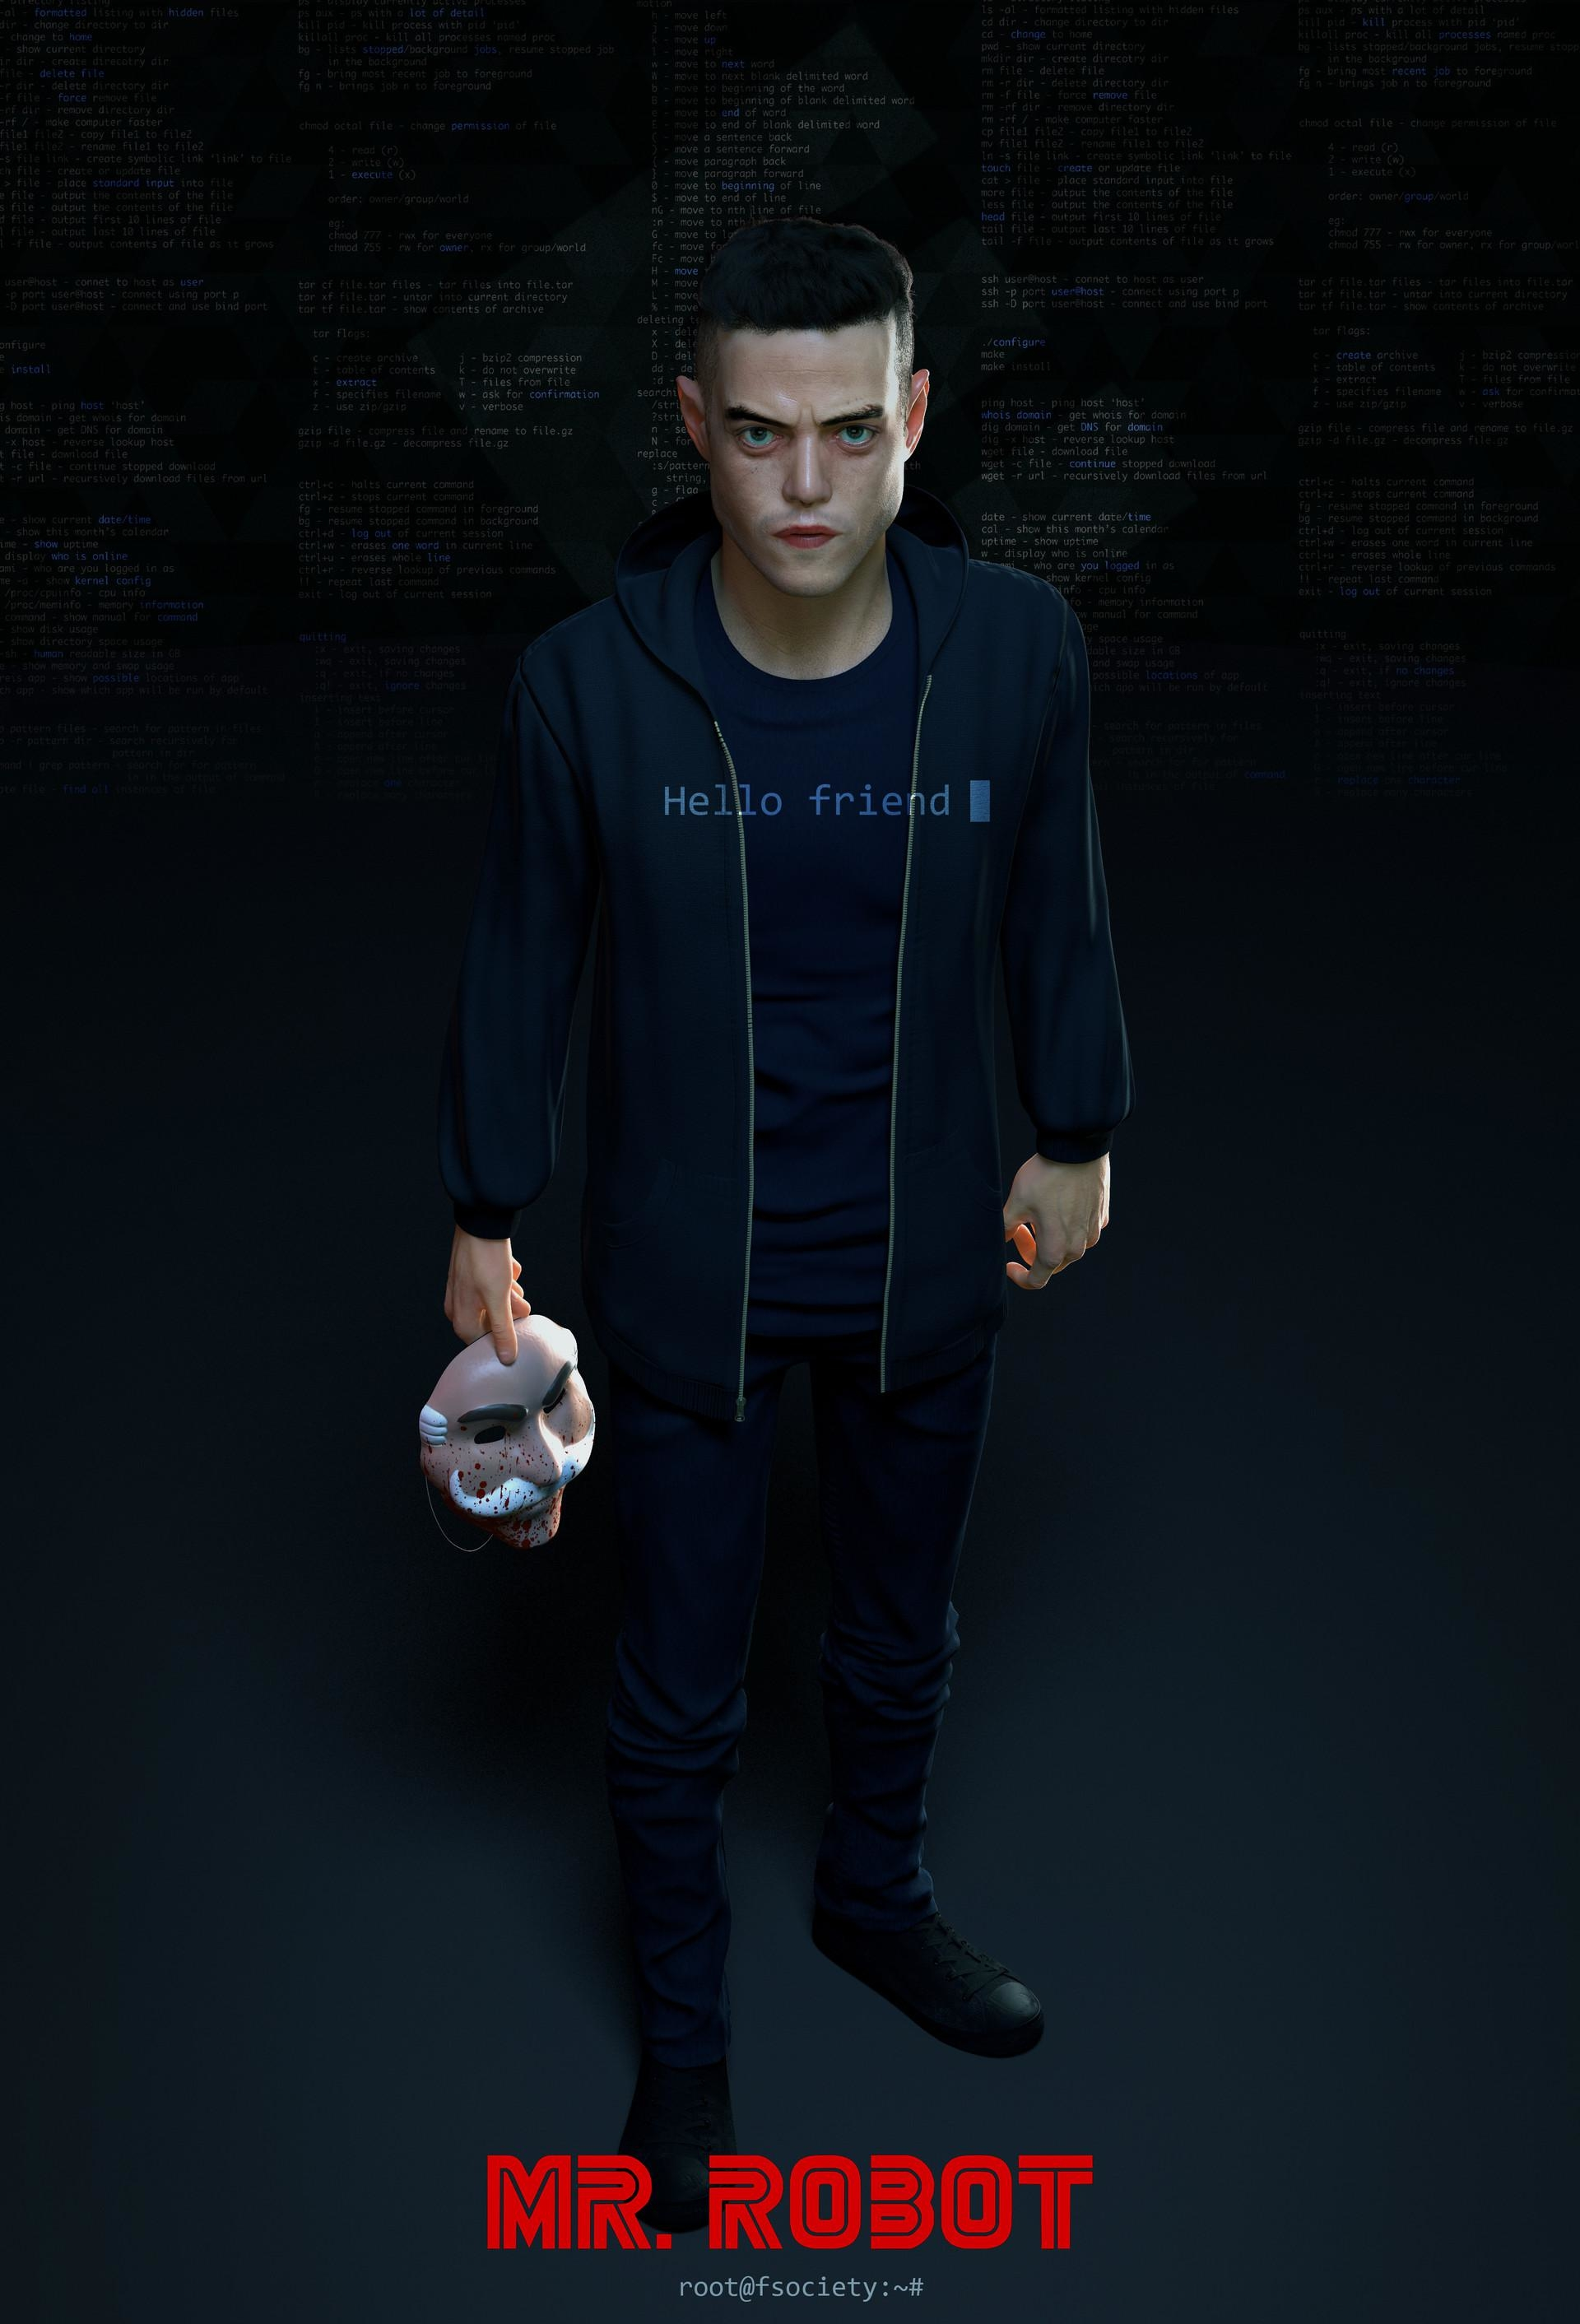 Hello Friend Mr Robot Wallpaper Hd Tv Series 4k Wallpapers Images Photos And Background